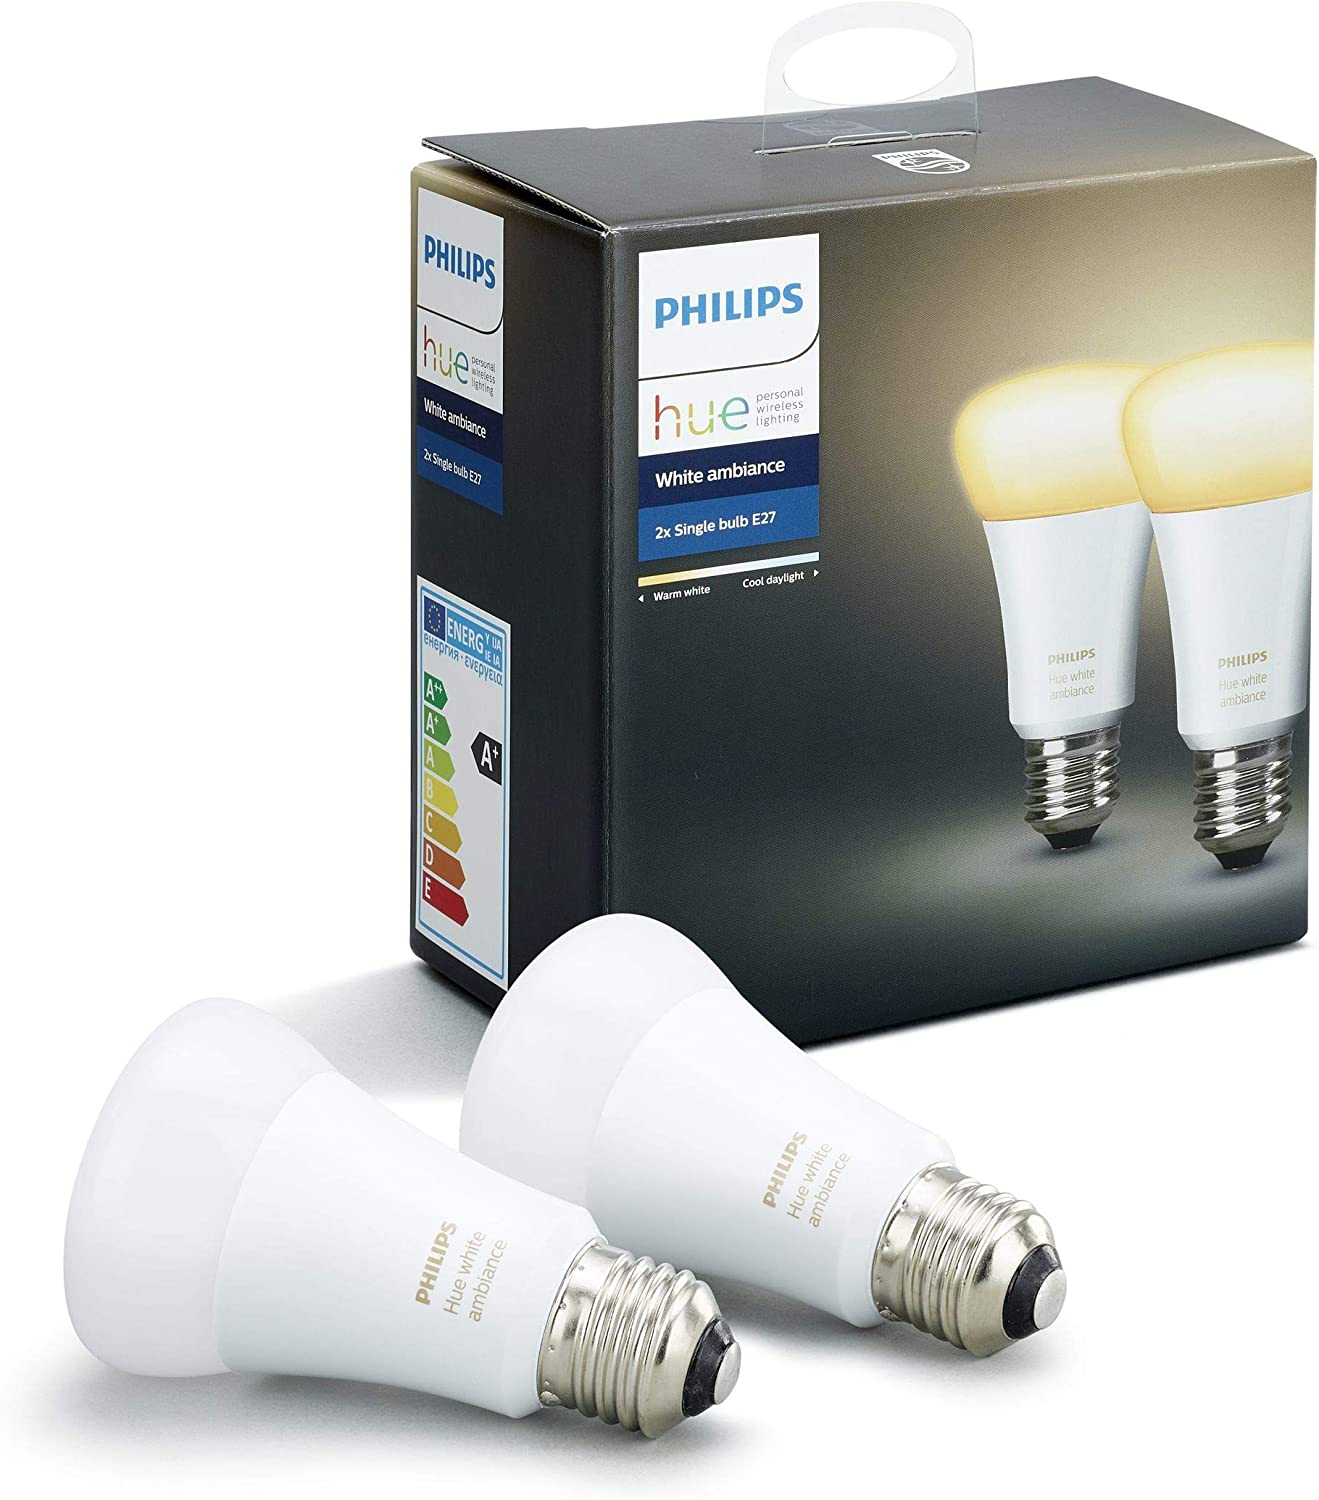 Philips Hue White and Color Ambiance Doppelpack E27 LED Lampe 8718699673284